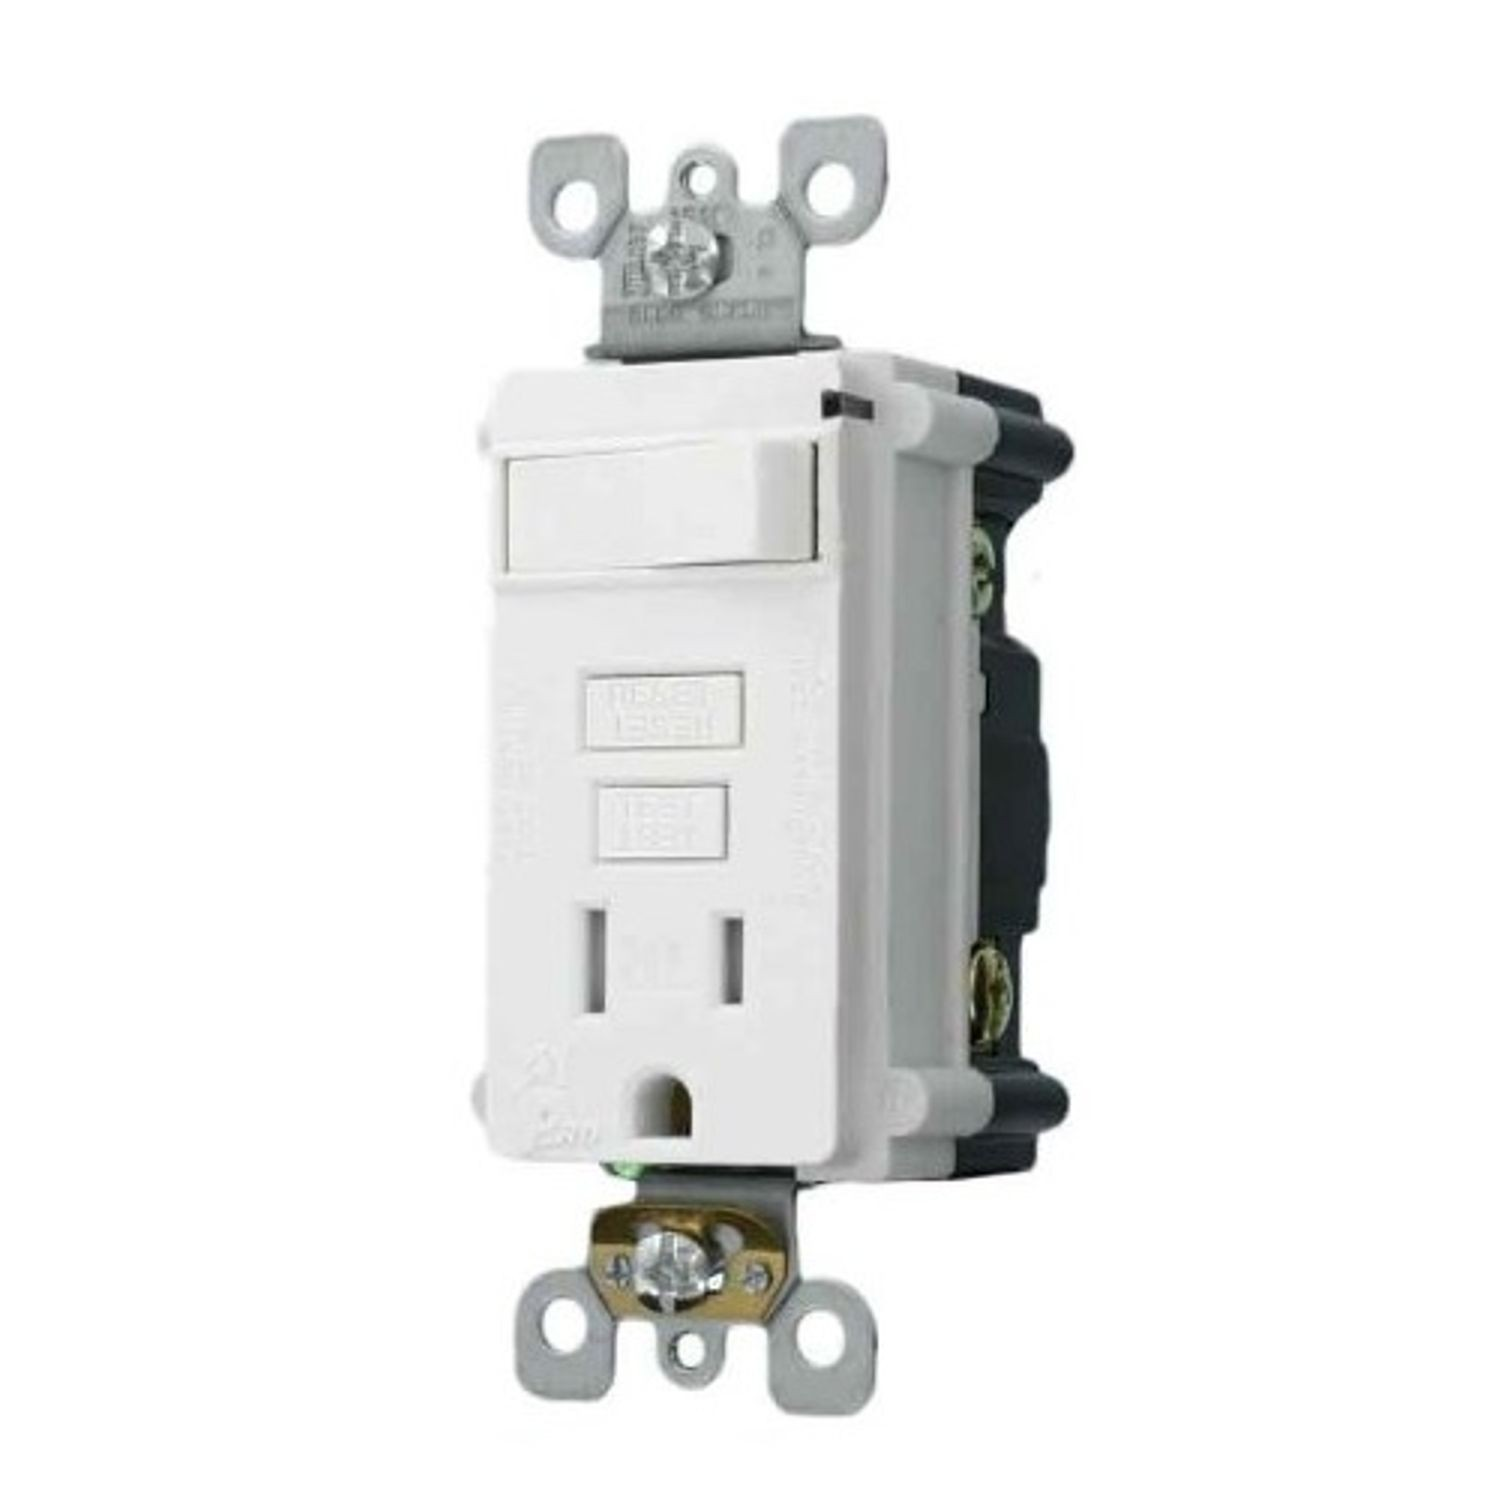 hight resolution of smartlockpro t7299 w single outlet tamper resistant combination gfci receptacle and switch 15 a 125 vac 2 poles 3 wires 14 to 10 awg wire